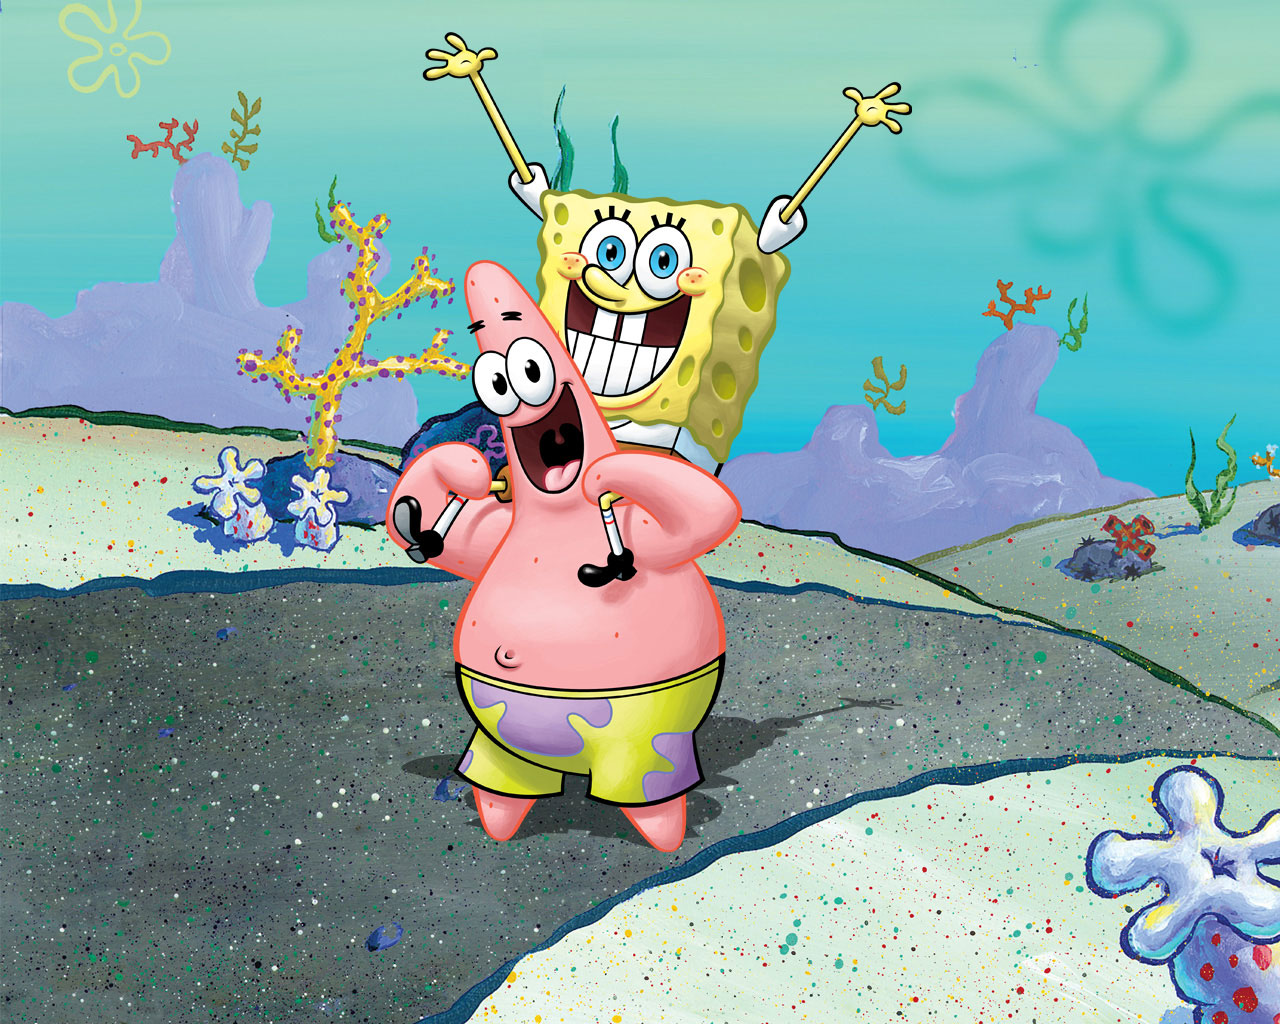 Spongebob Amp Patrick Spongebob Squarepants Wallpaper X